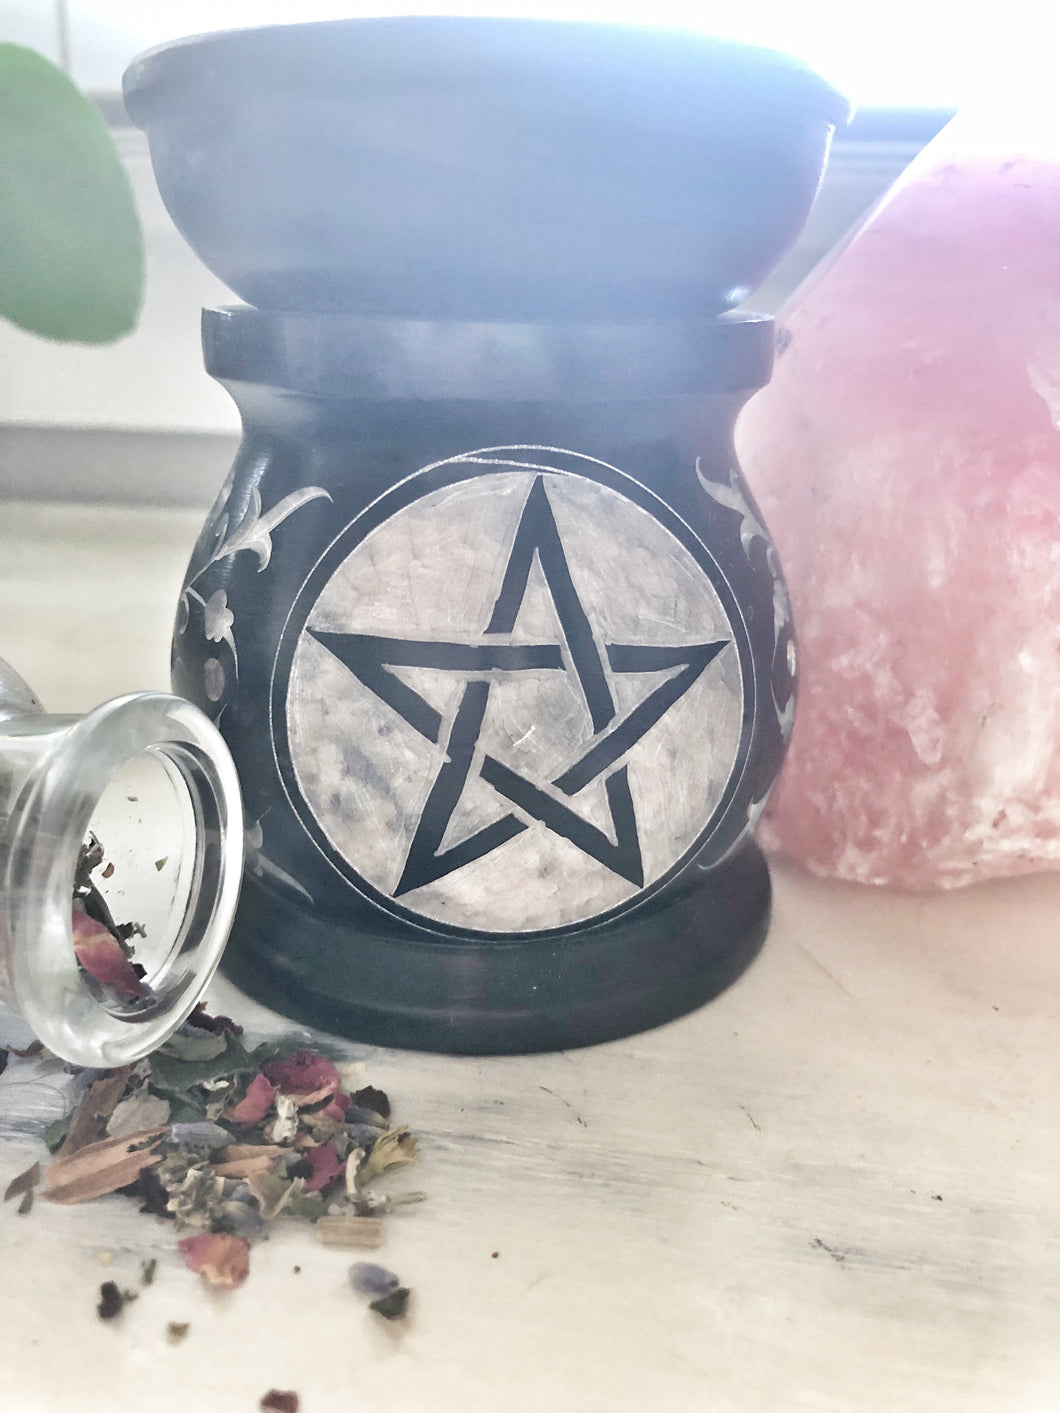 Pentacle soapstone oil burner